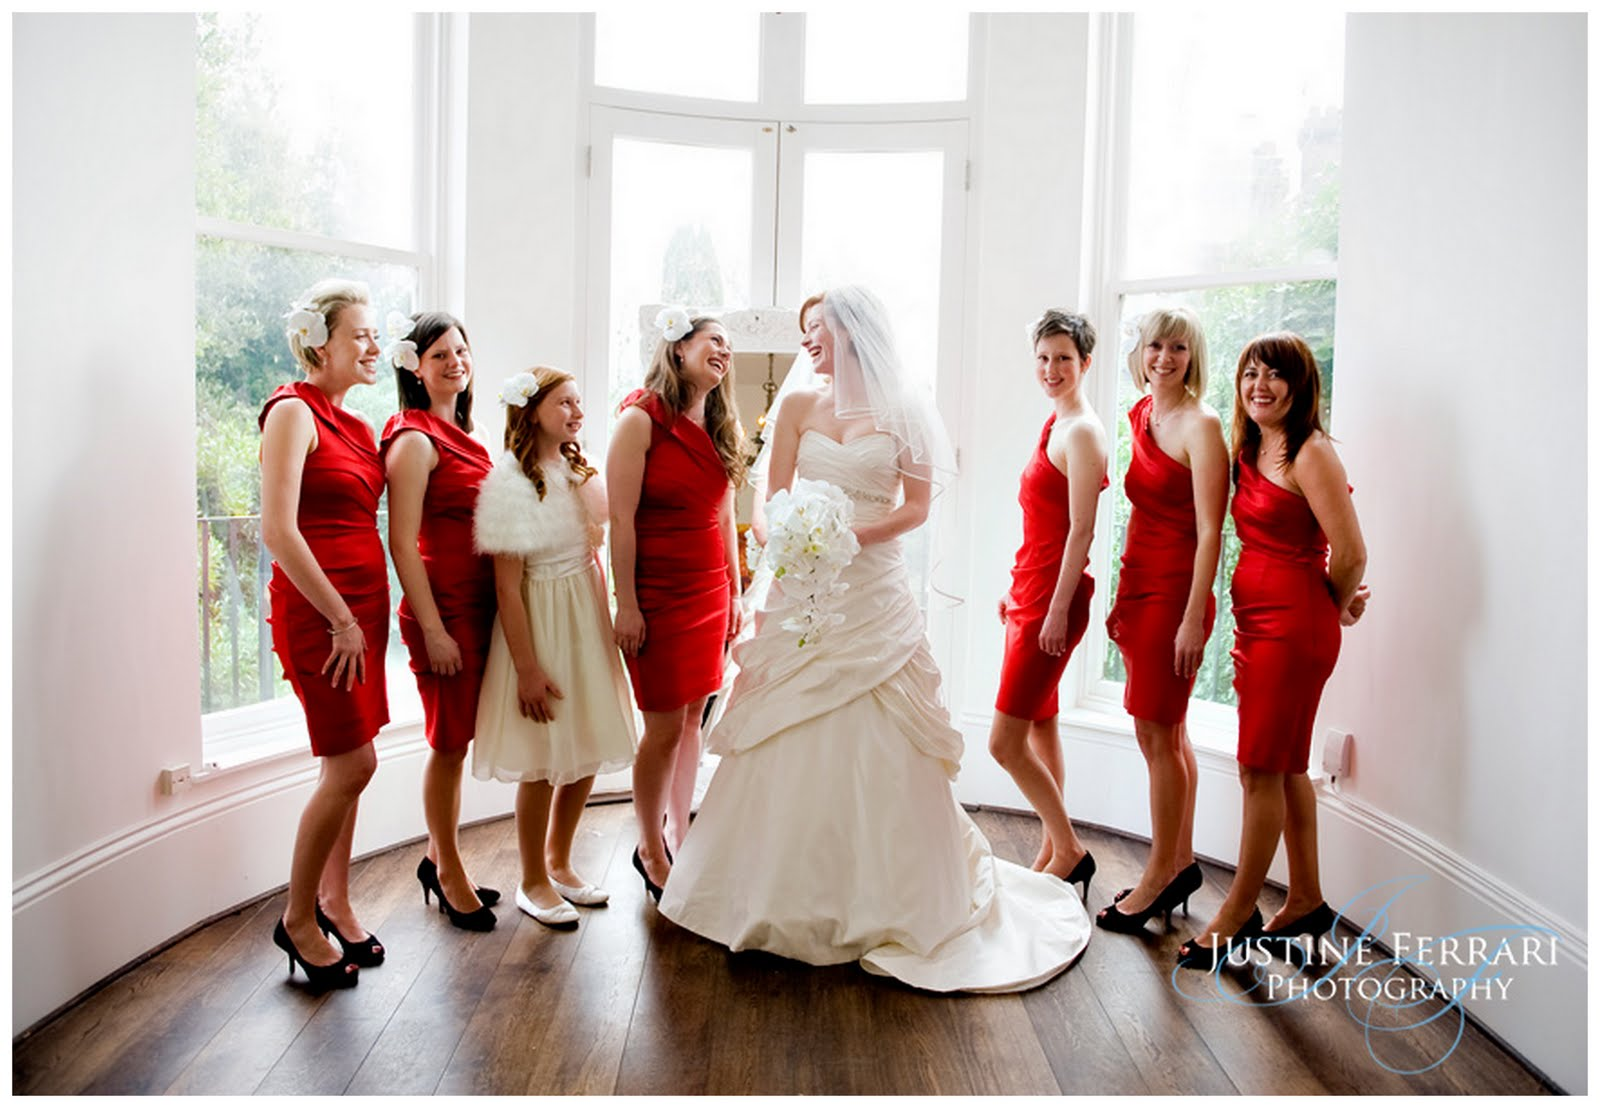 Red themed wedding image collections wedding decoration ideas red themed wedding midway media real spring red themed london wedding sara rich therapyboxfo wedding ideas junglespirit Images